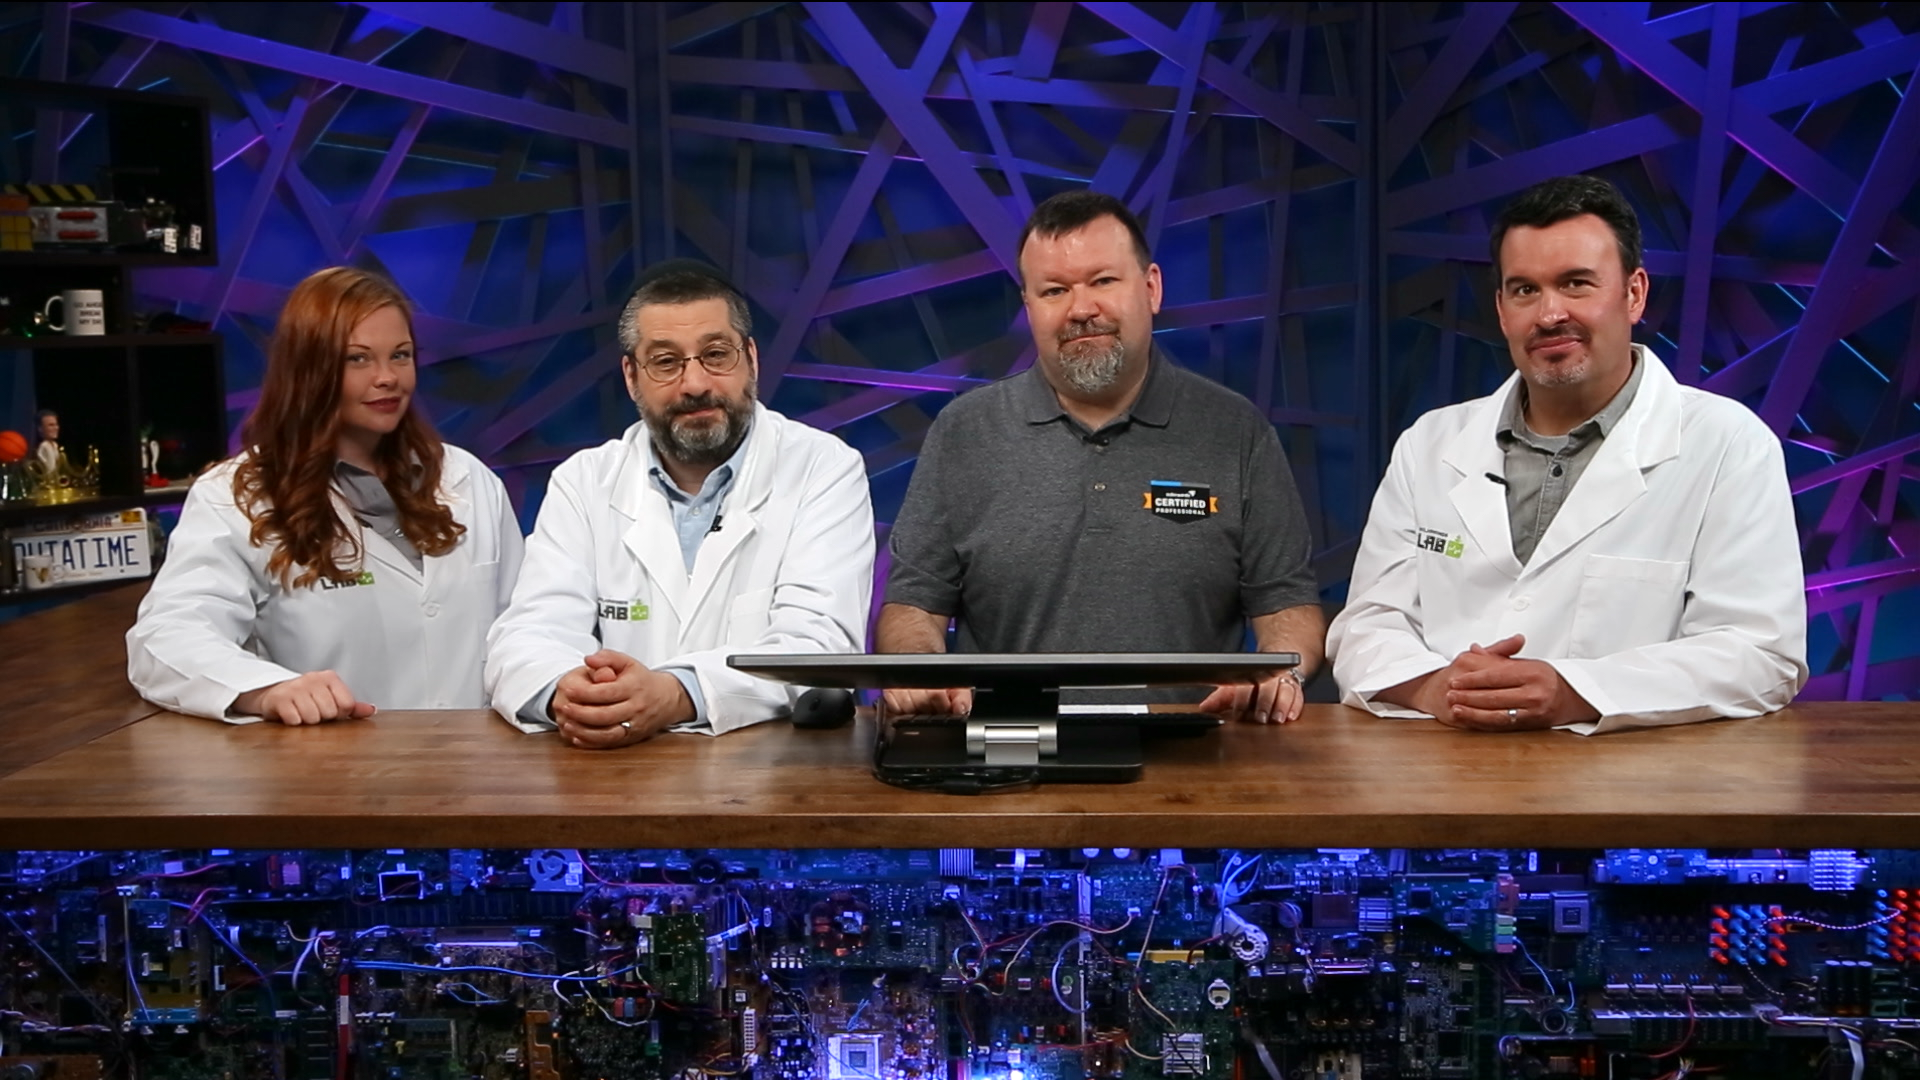 SolarWinds Lab Episode #56 - Certithon 2017